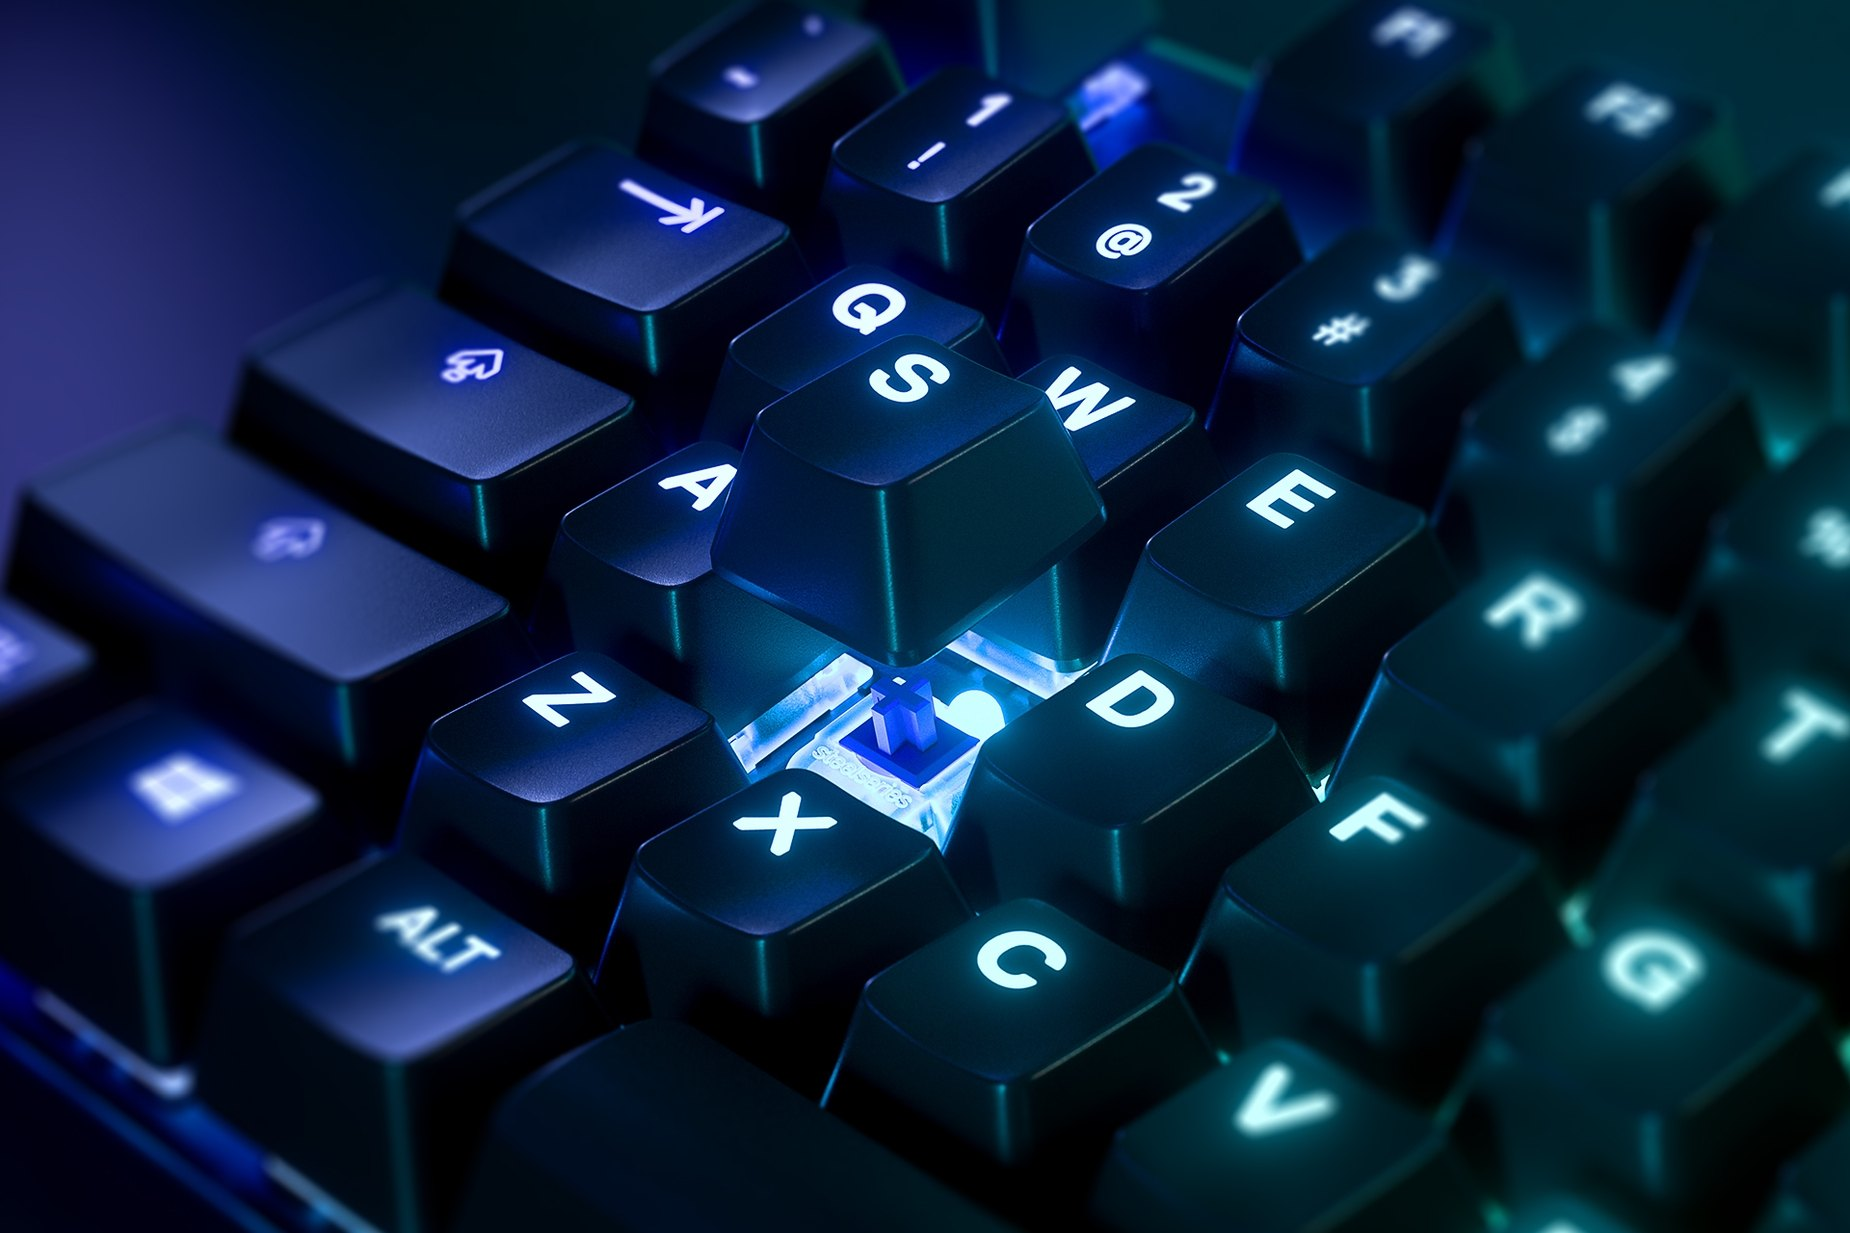 Zoomed in view of a single key on the US English - Apex 7 (Blue Switch) gaming keyboard, the key is raised up to show the SteelSeries QX2 Mechanical RGB Switch underneath